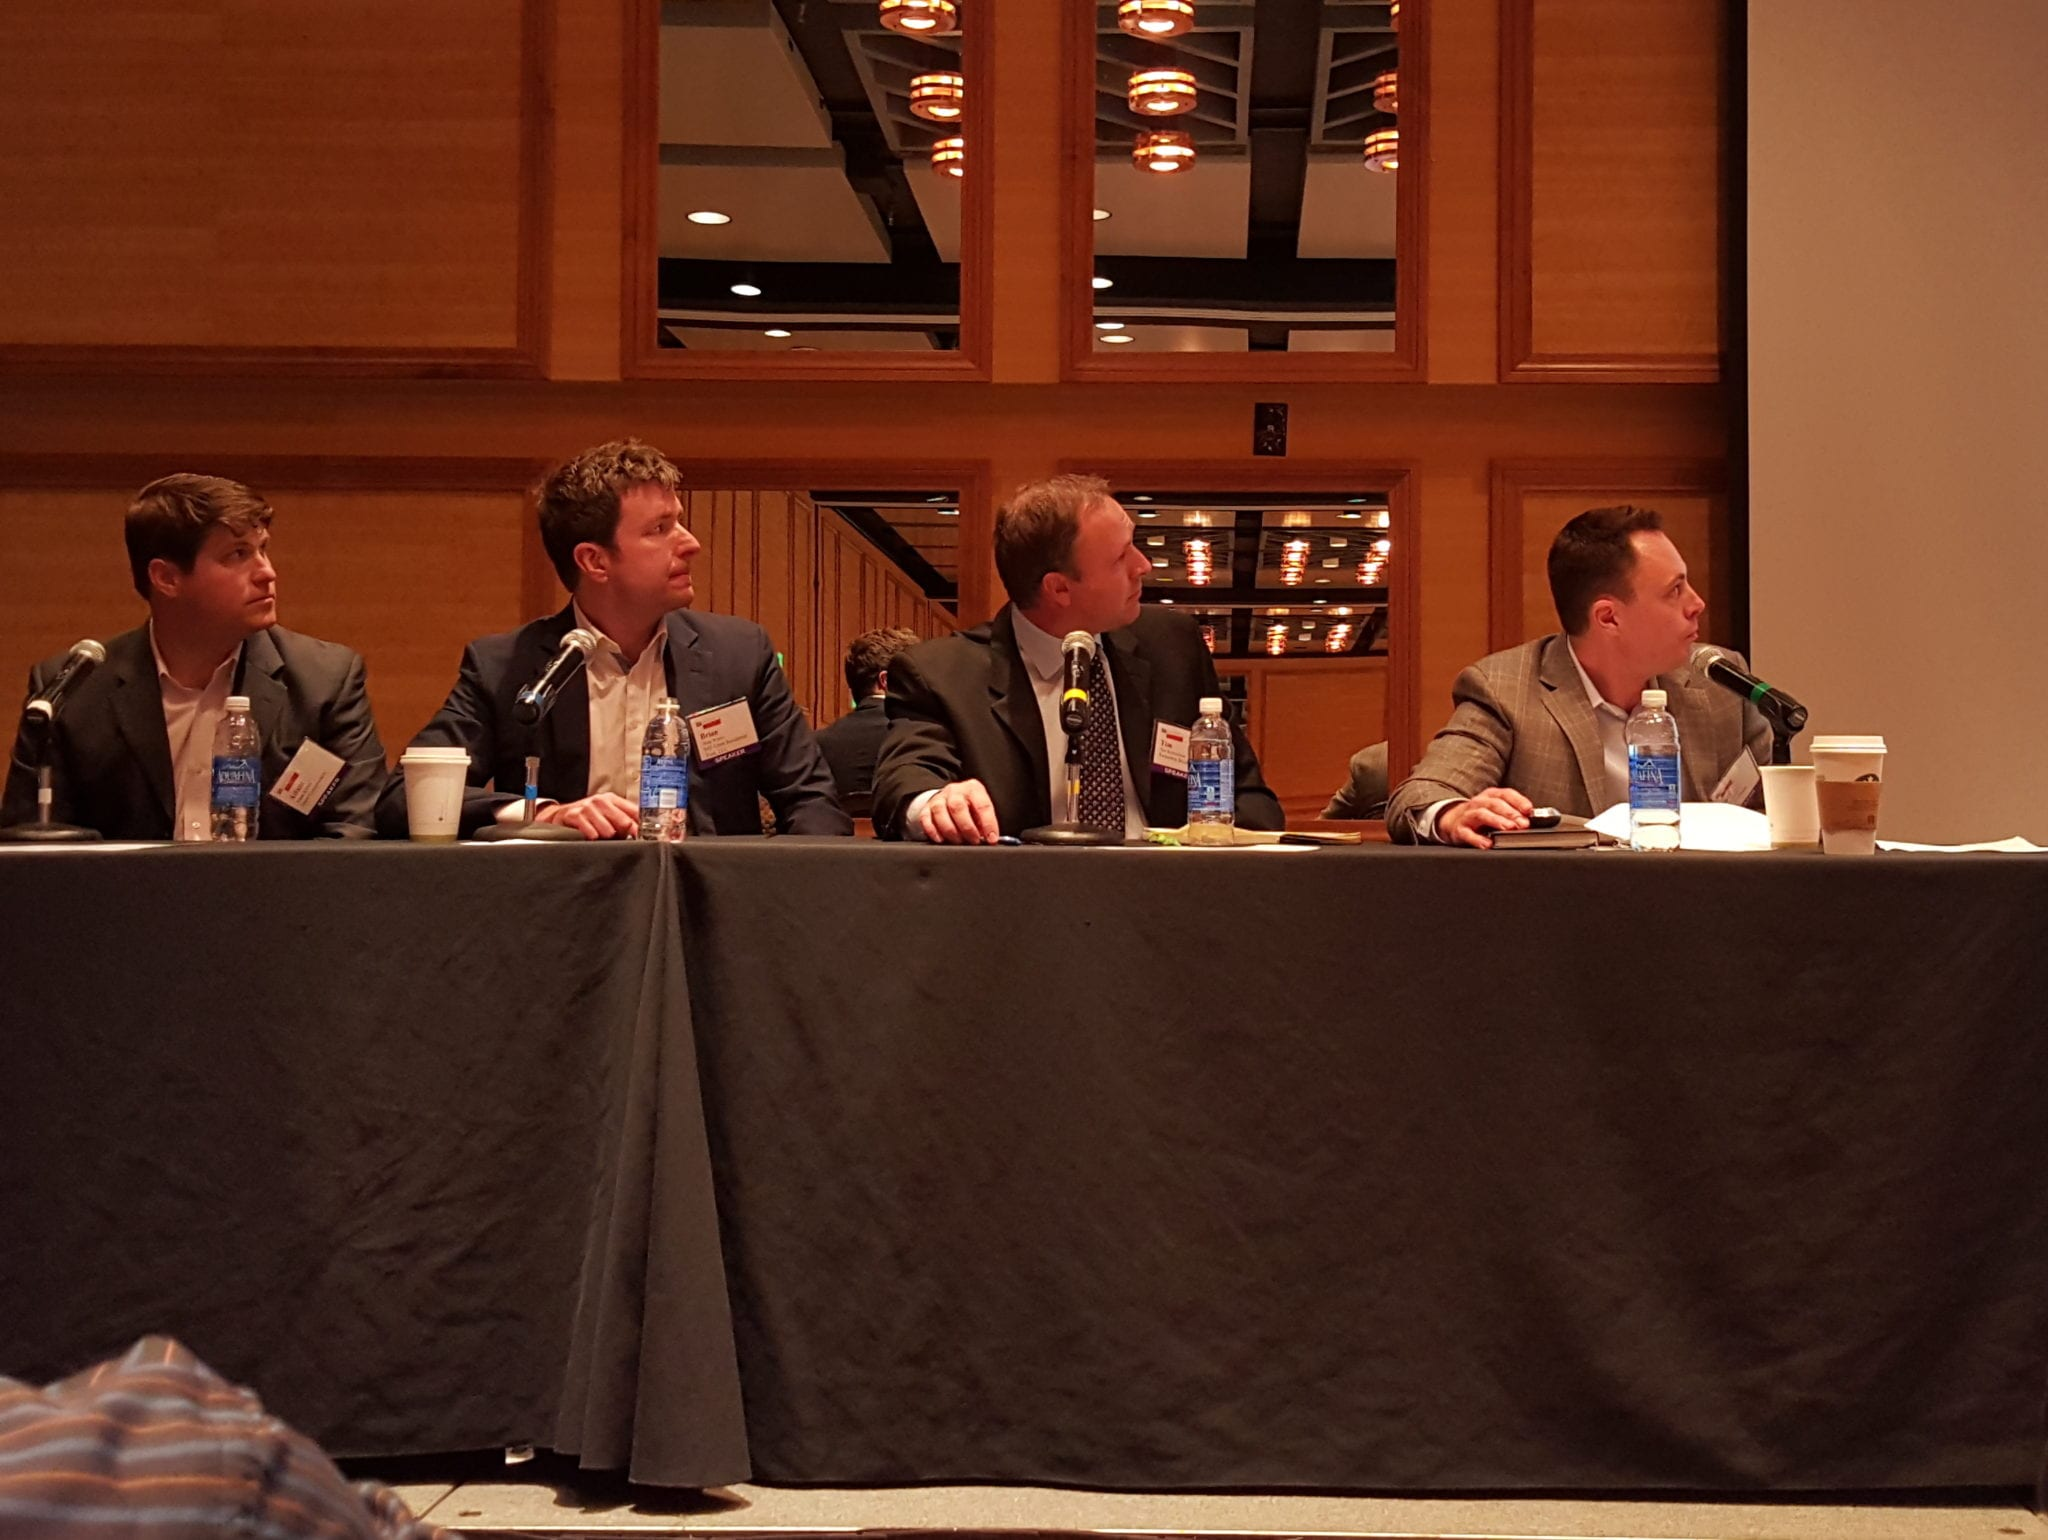 Panelists from the 2016 Development & Construction Summit